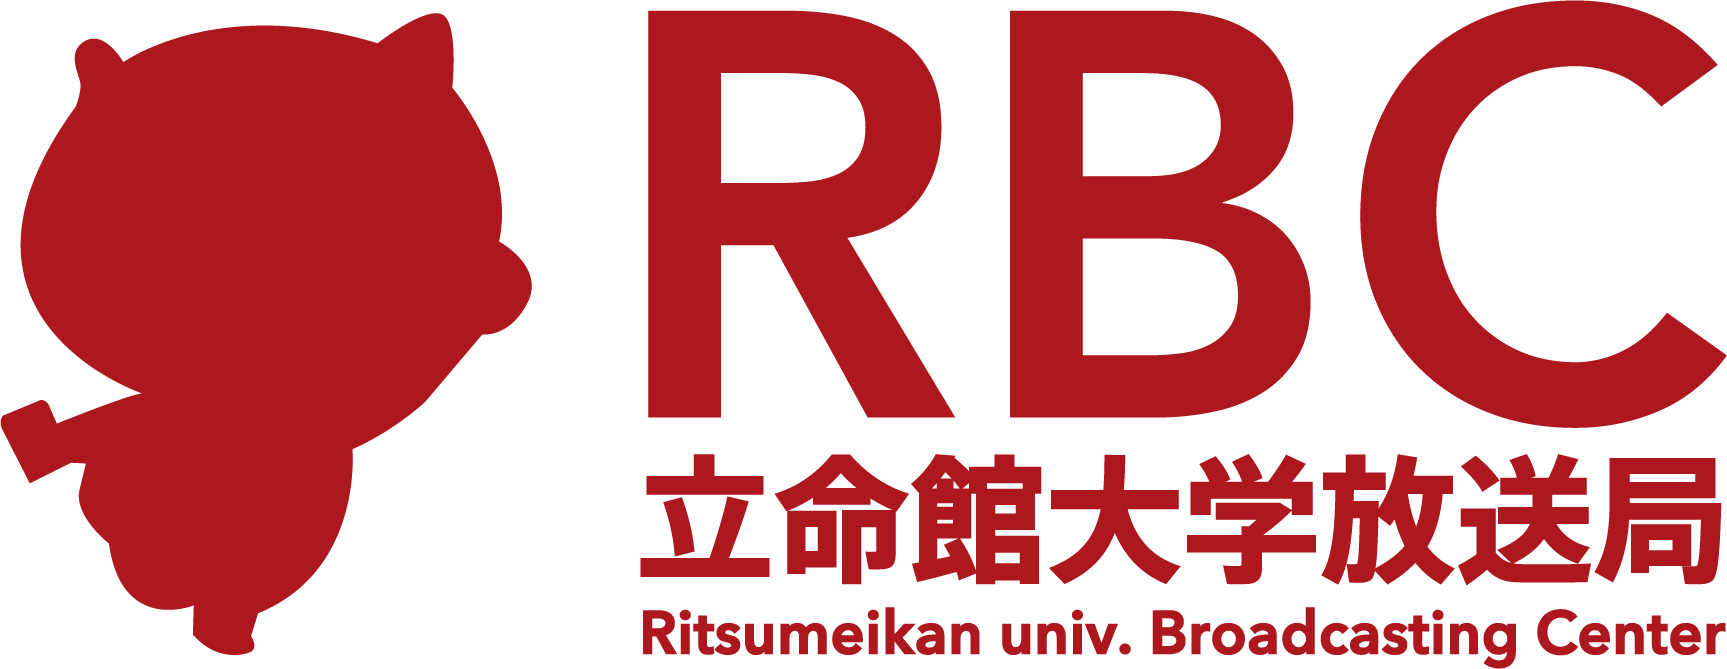 立命館大学放送局(RBC)